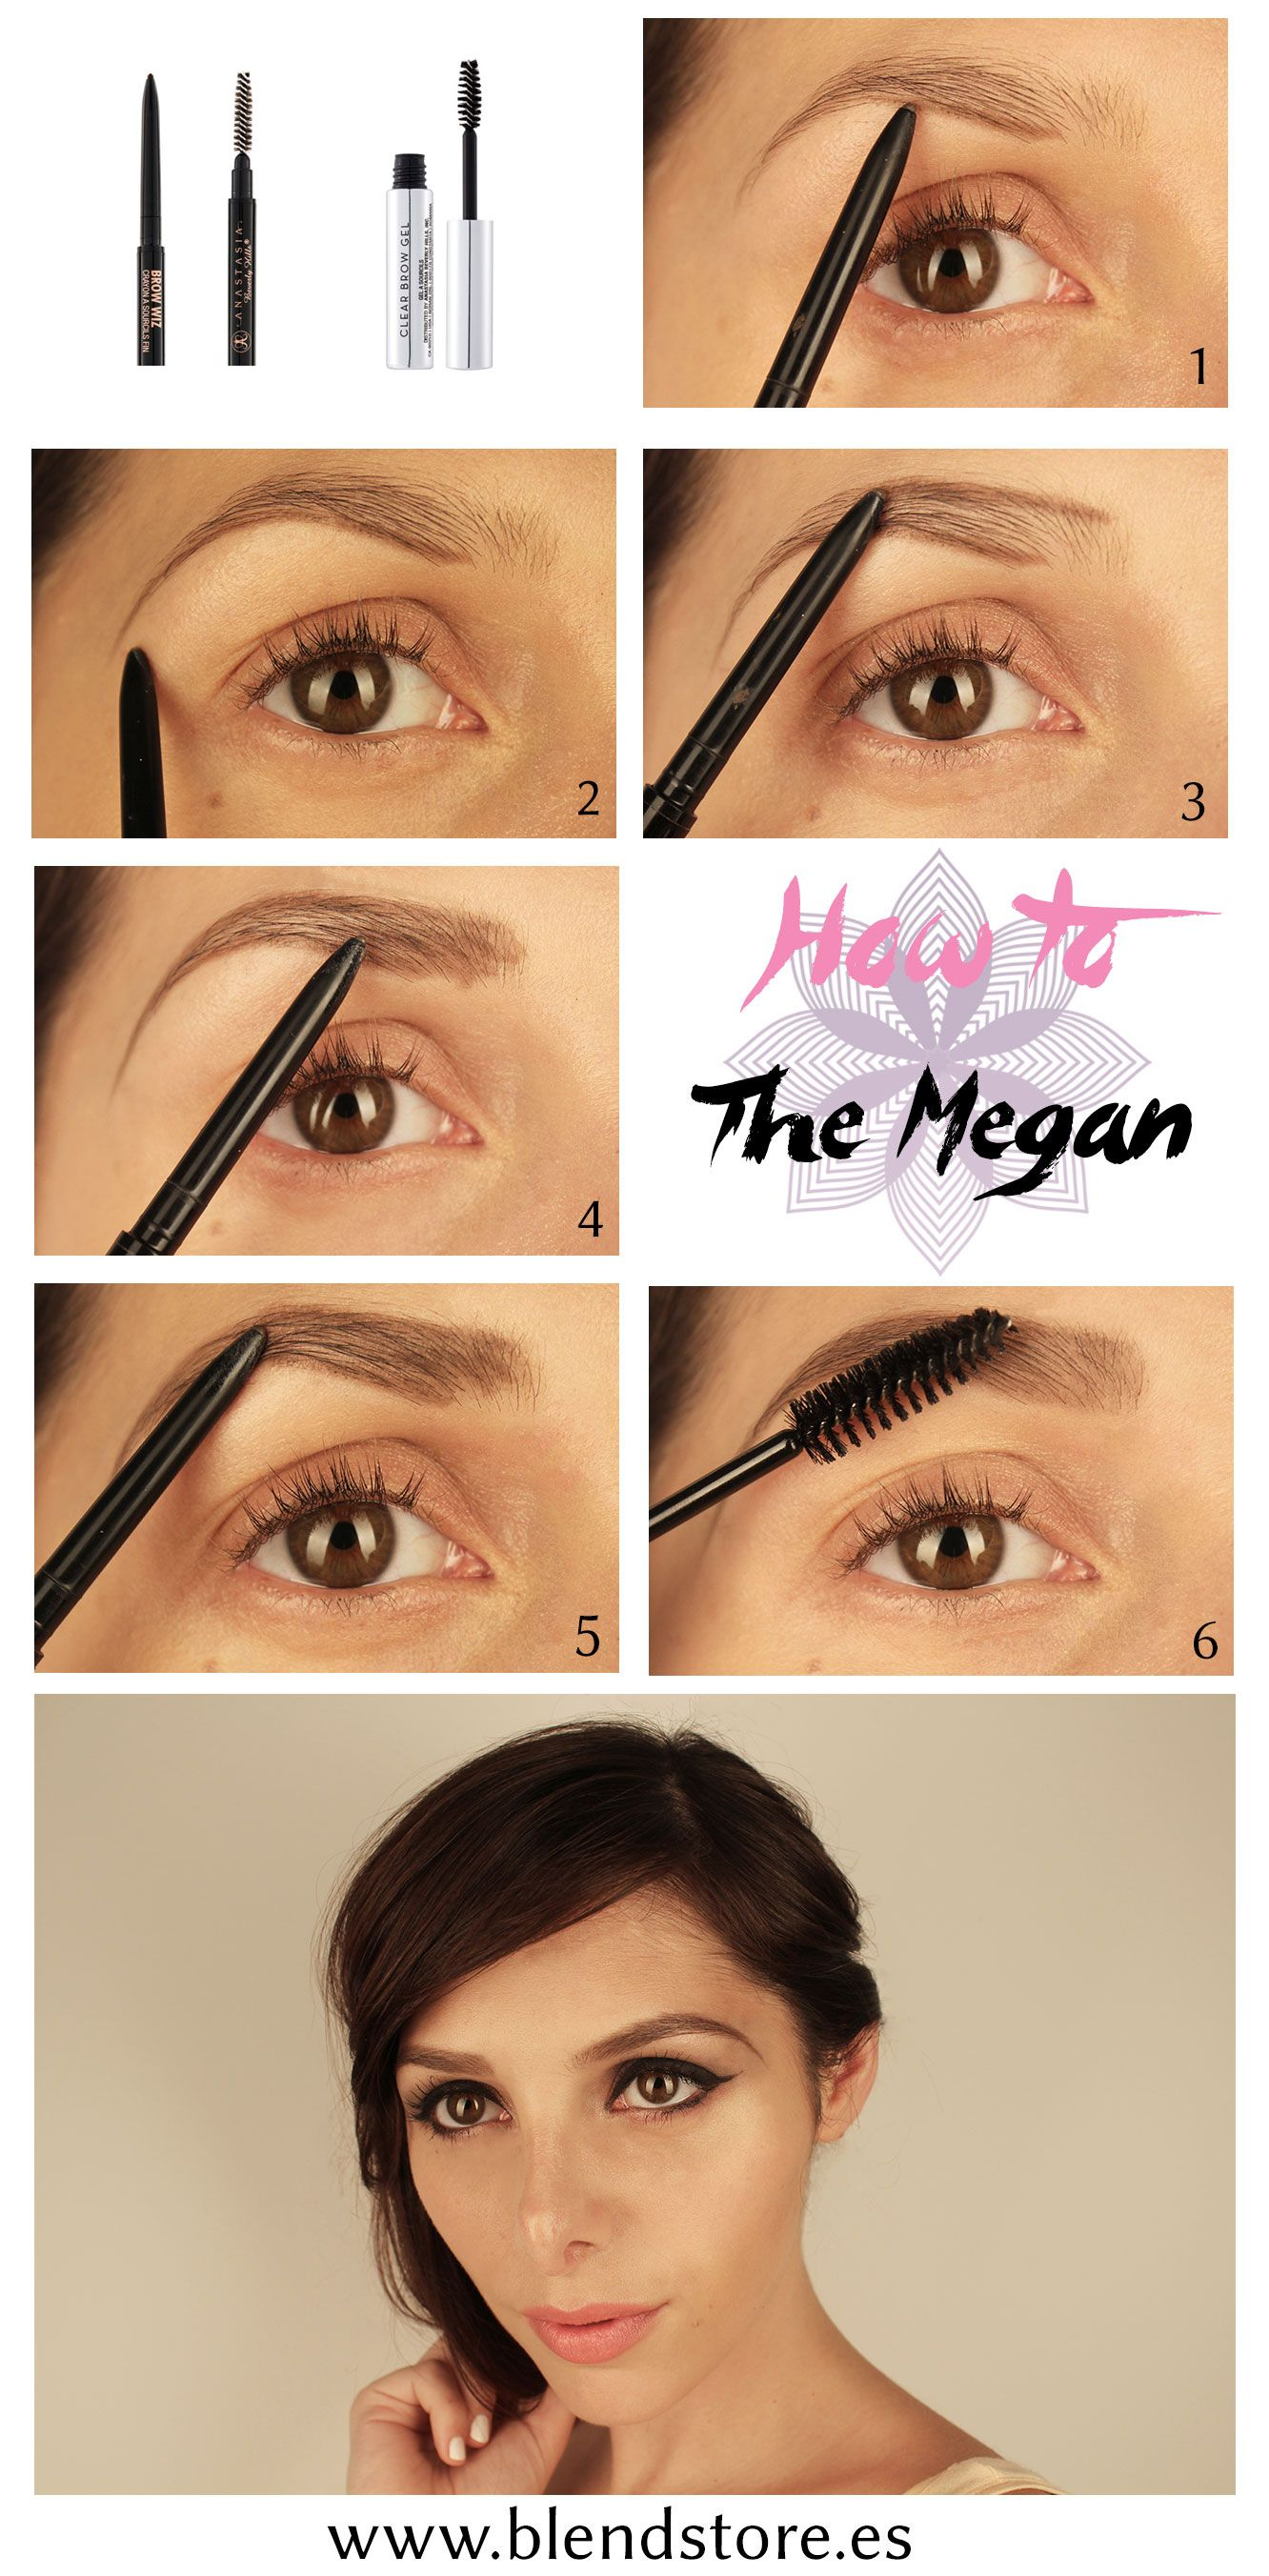 Blend store studio tutorial how to eye brows the megan fox with blend store studio tutorial how to eye brows the megan fox with anastasia beverly hills brow baditri Images